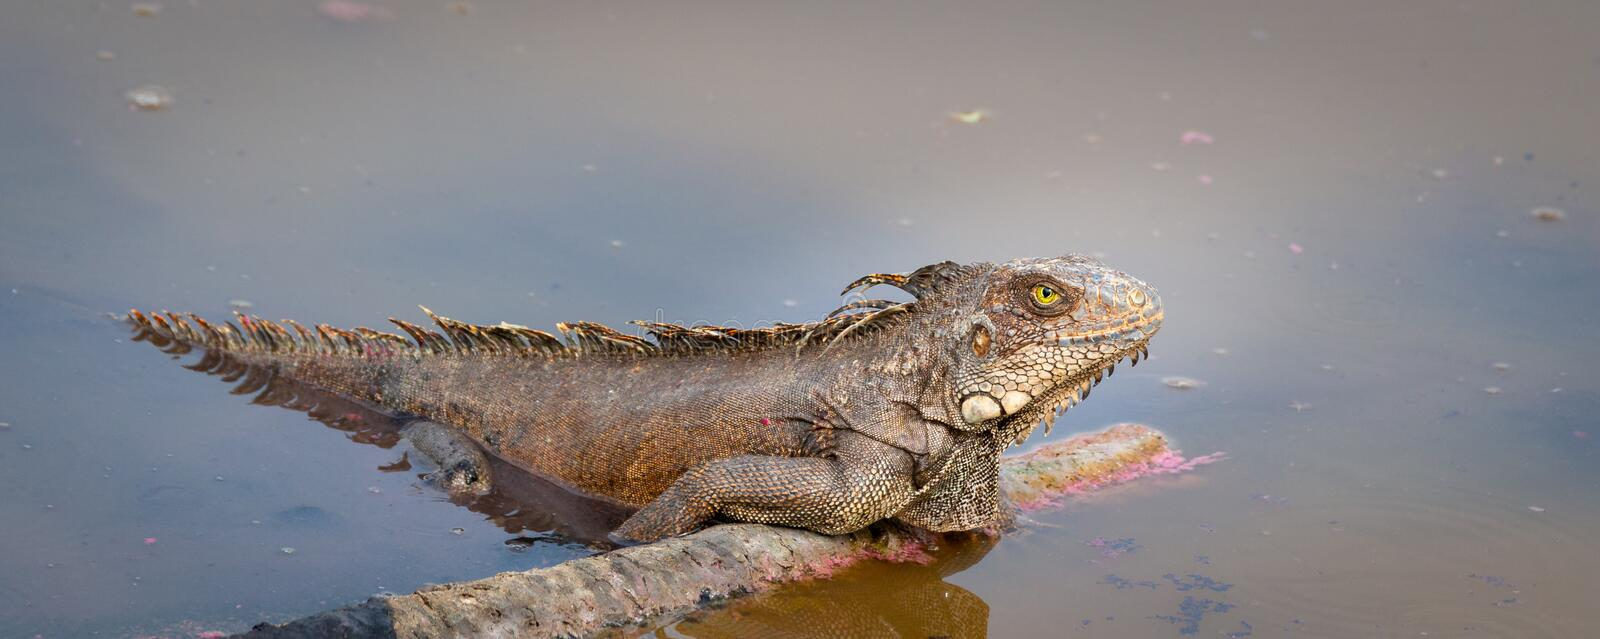 Green iguana in water royalty free stock images